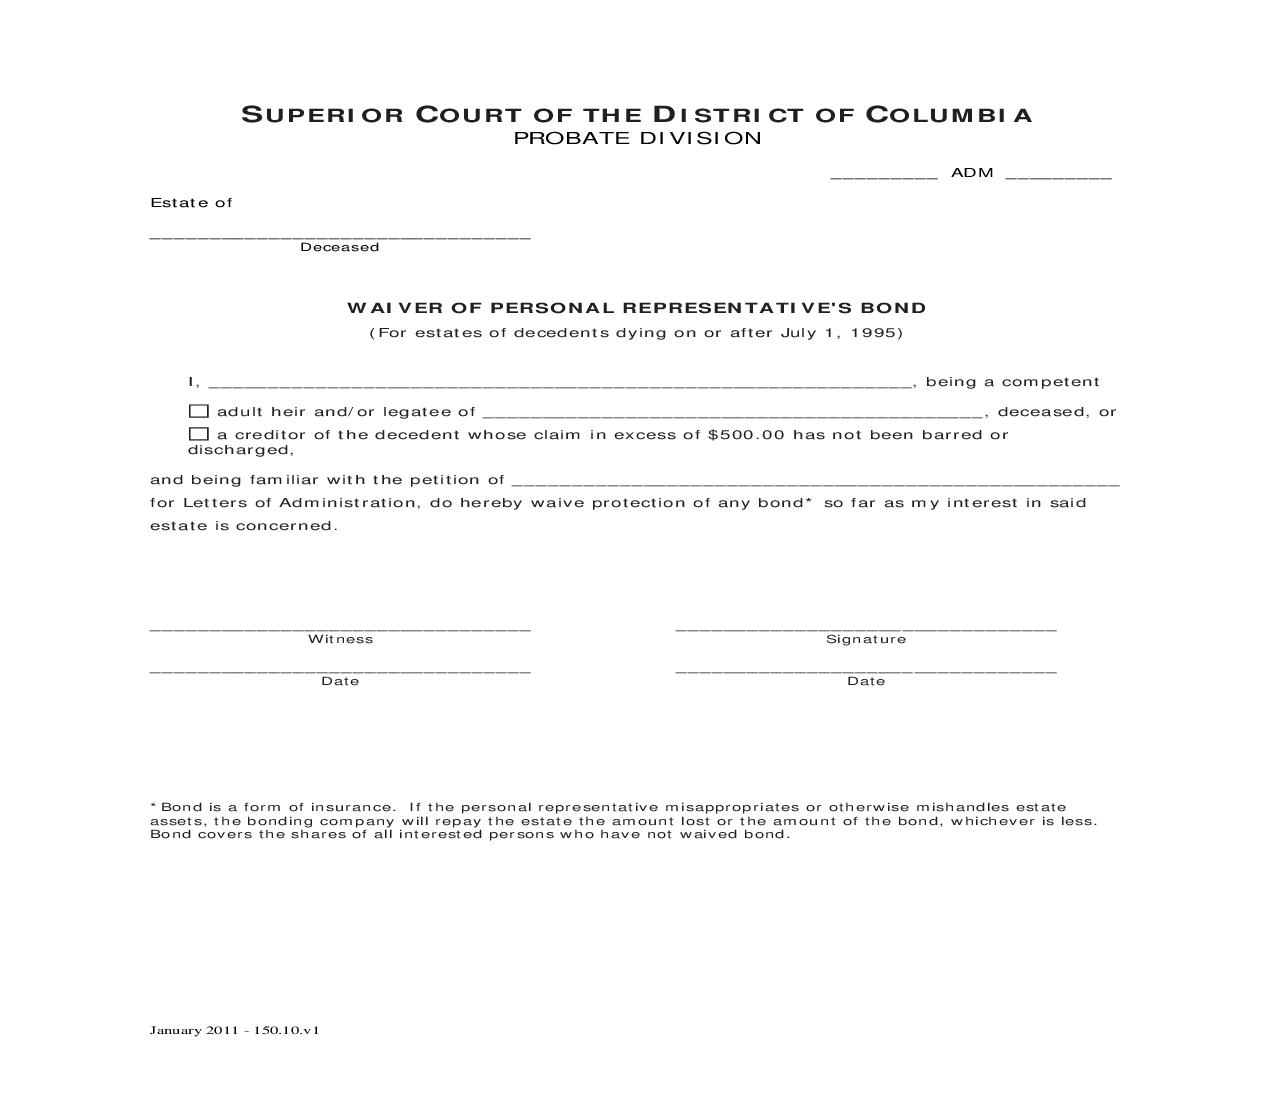 Waiver Of Personal Representatives Bond | Pdf Fpdf Doc Docx | District Of Columbia